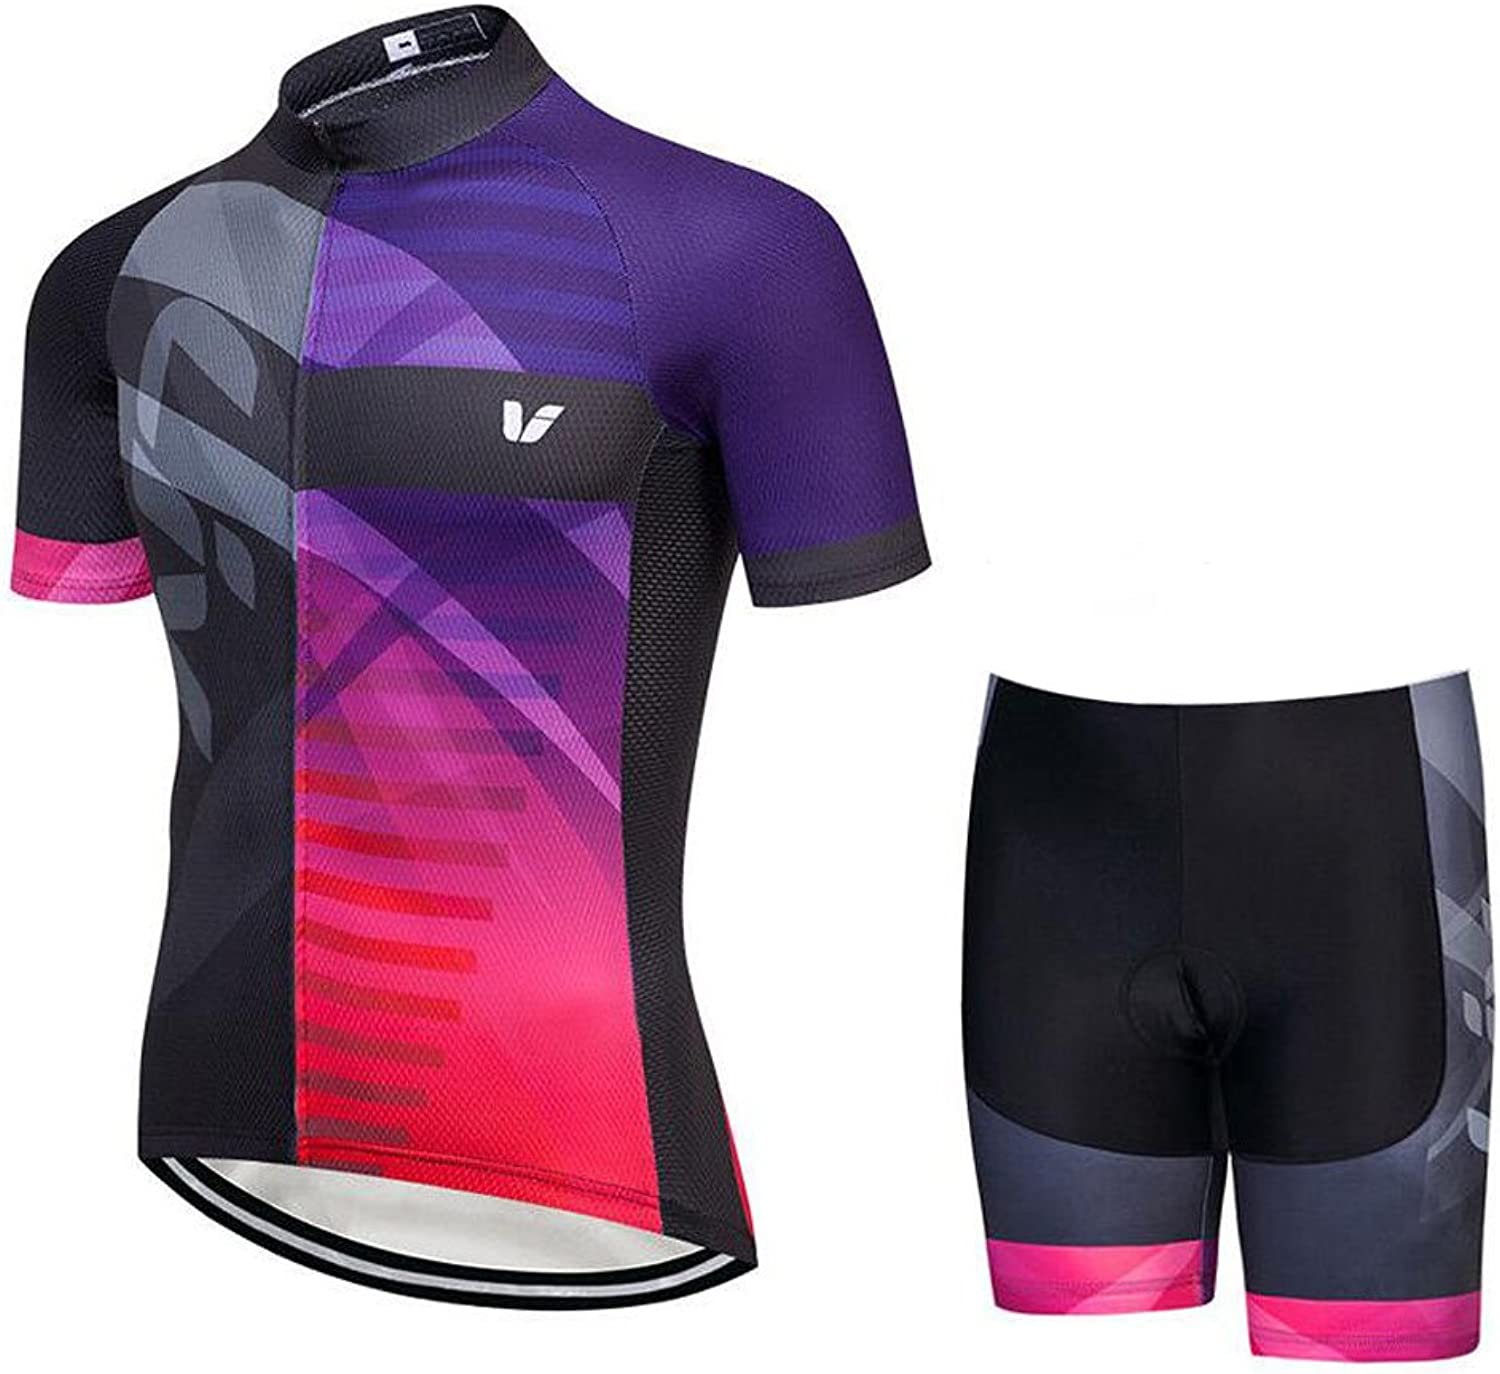 Women Biking Jerseys Team Cycling Shirts Bike Tights Suit Bicycle Jacket Clothing